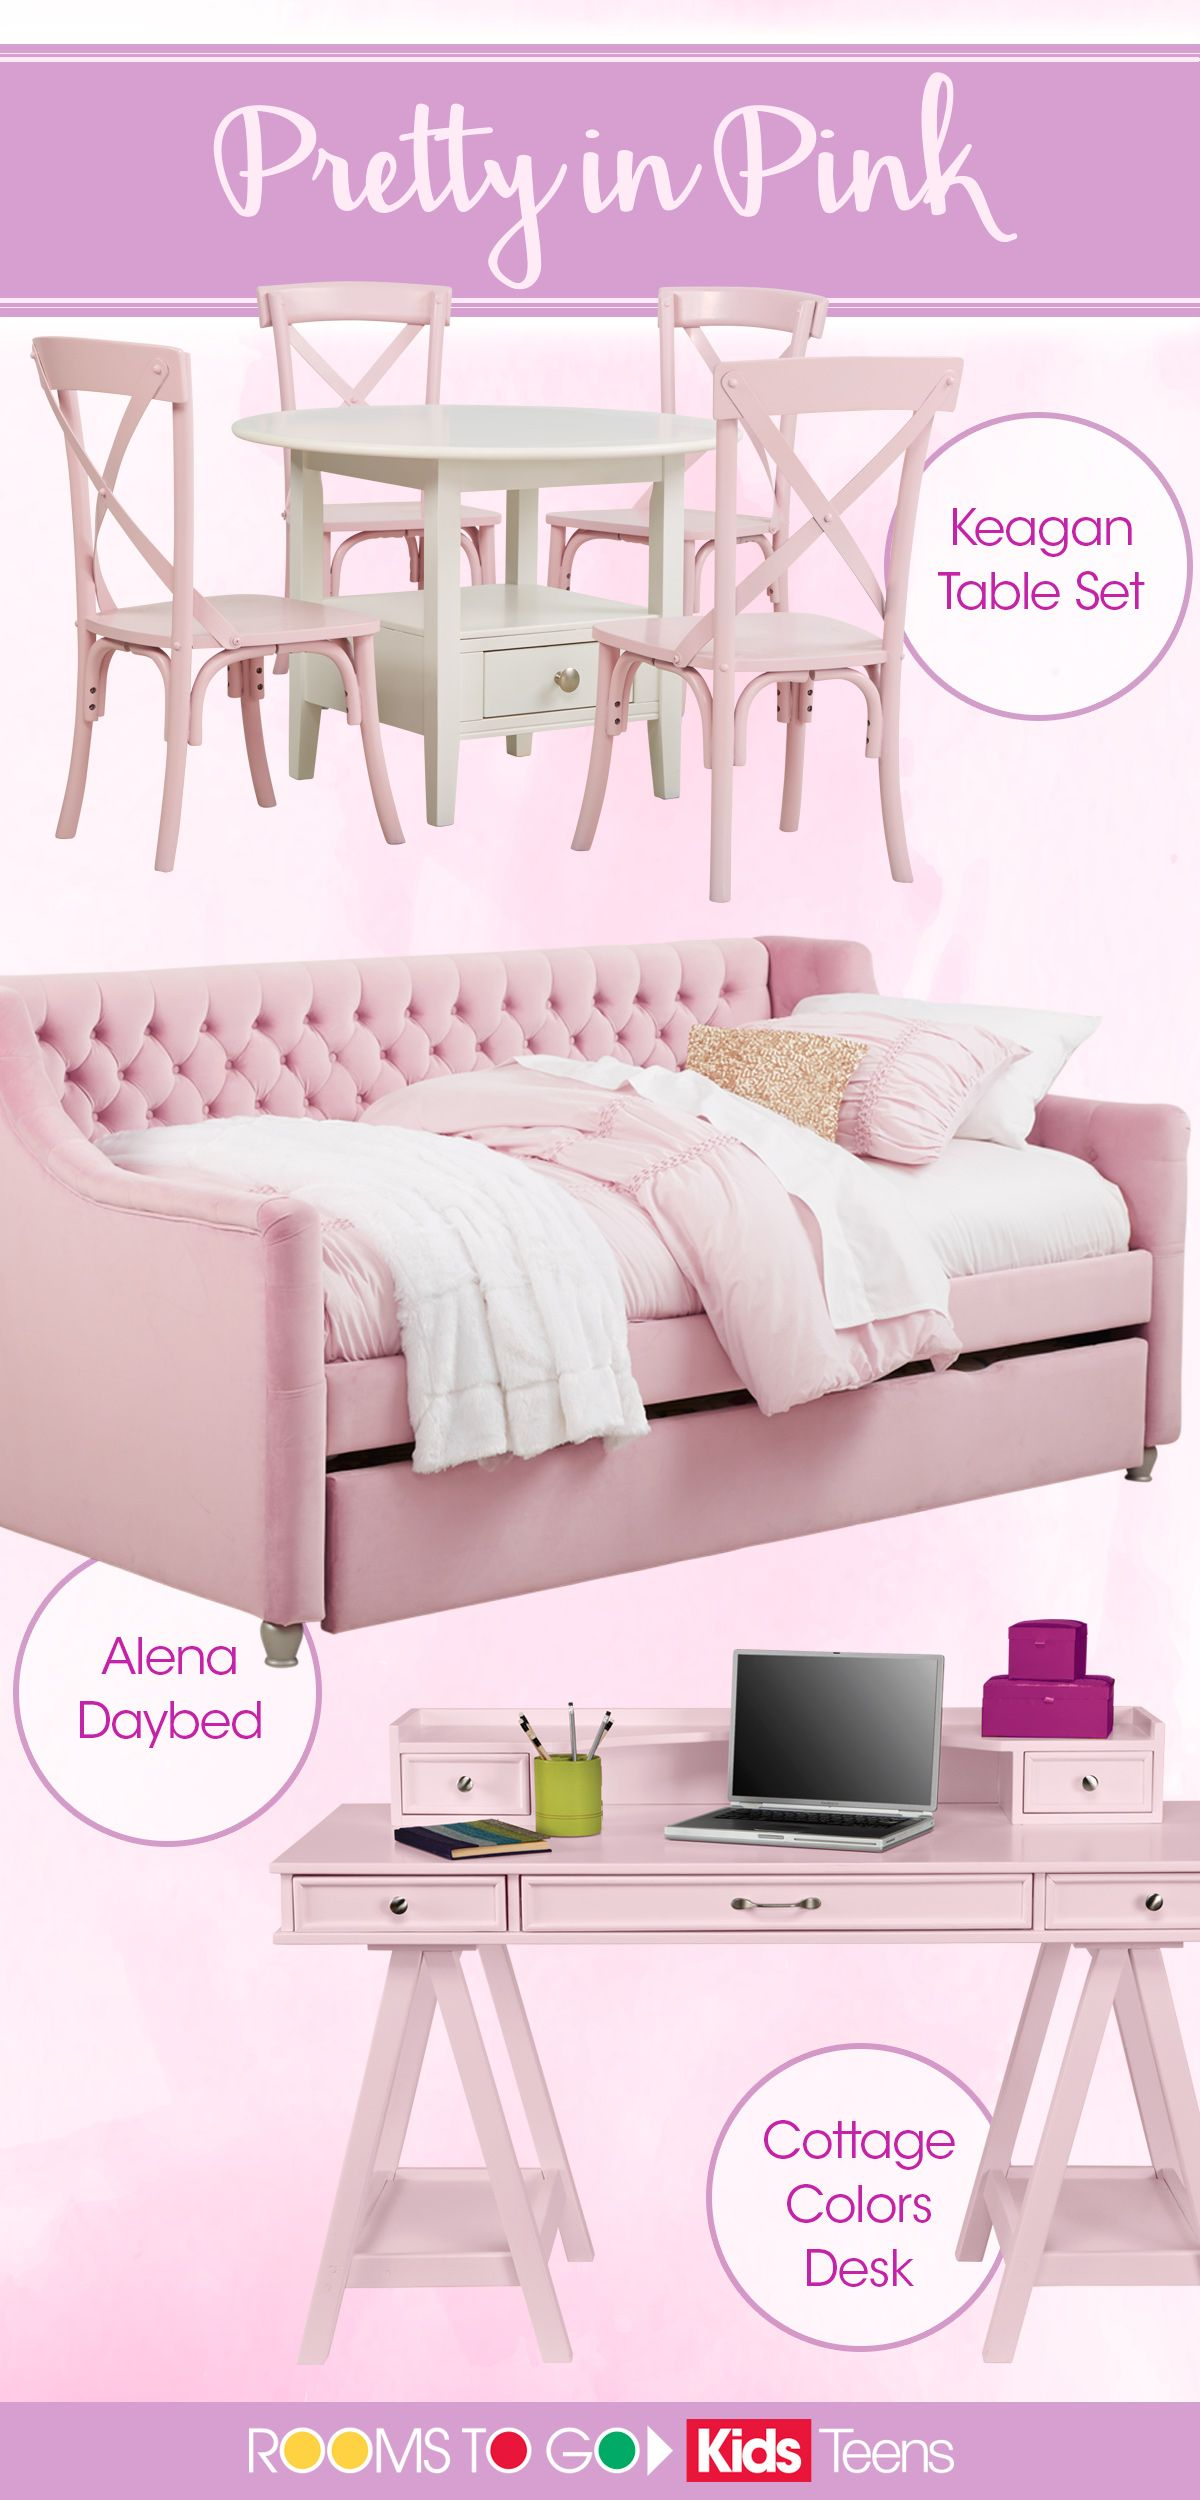 Pretty In Pink Decorate Your Little Girl S Room In Style With These Amazing Pieces Ranging Girls Bedroom Furniture Girls Room Design Bedroom Furniture Stores